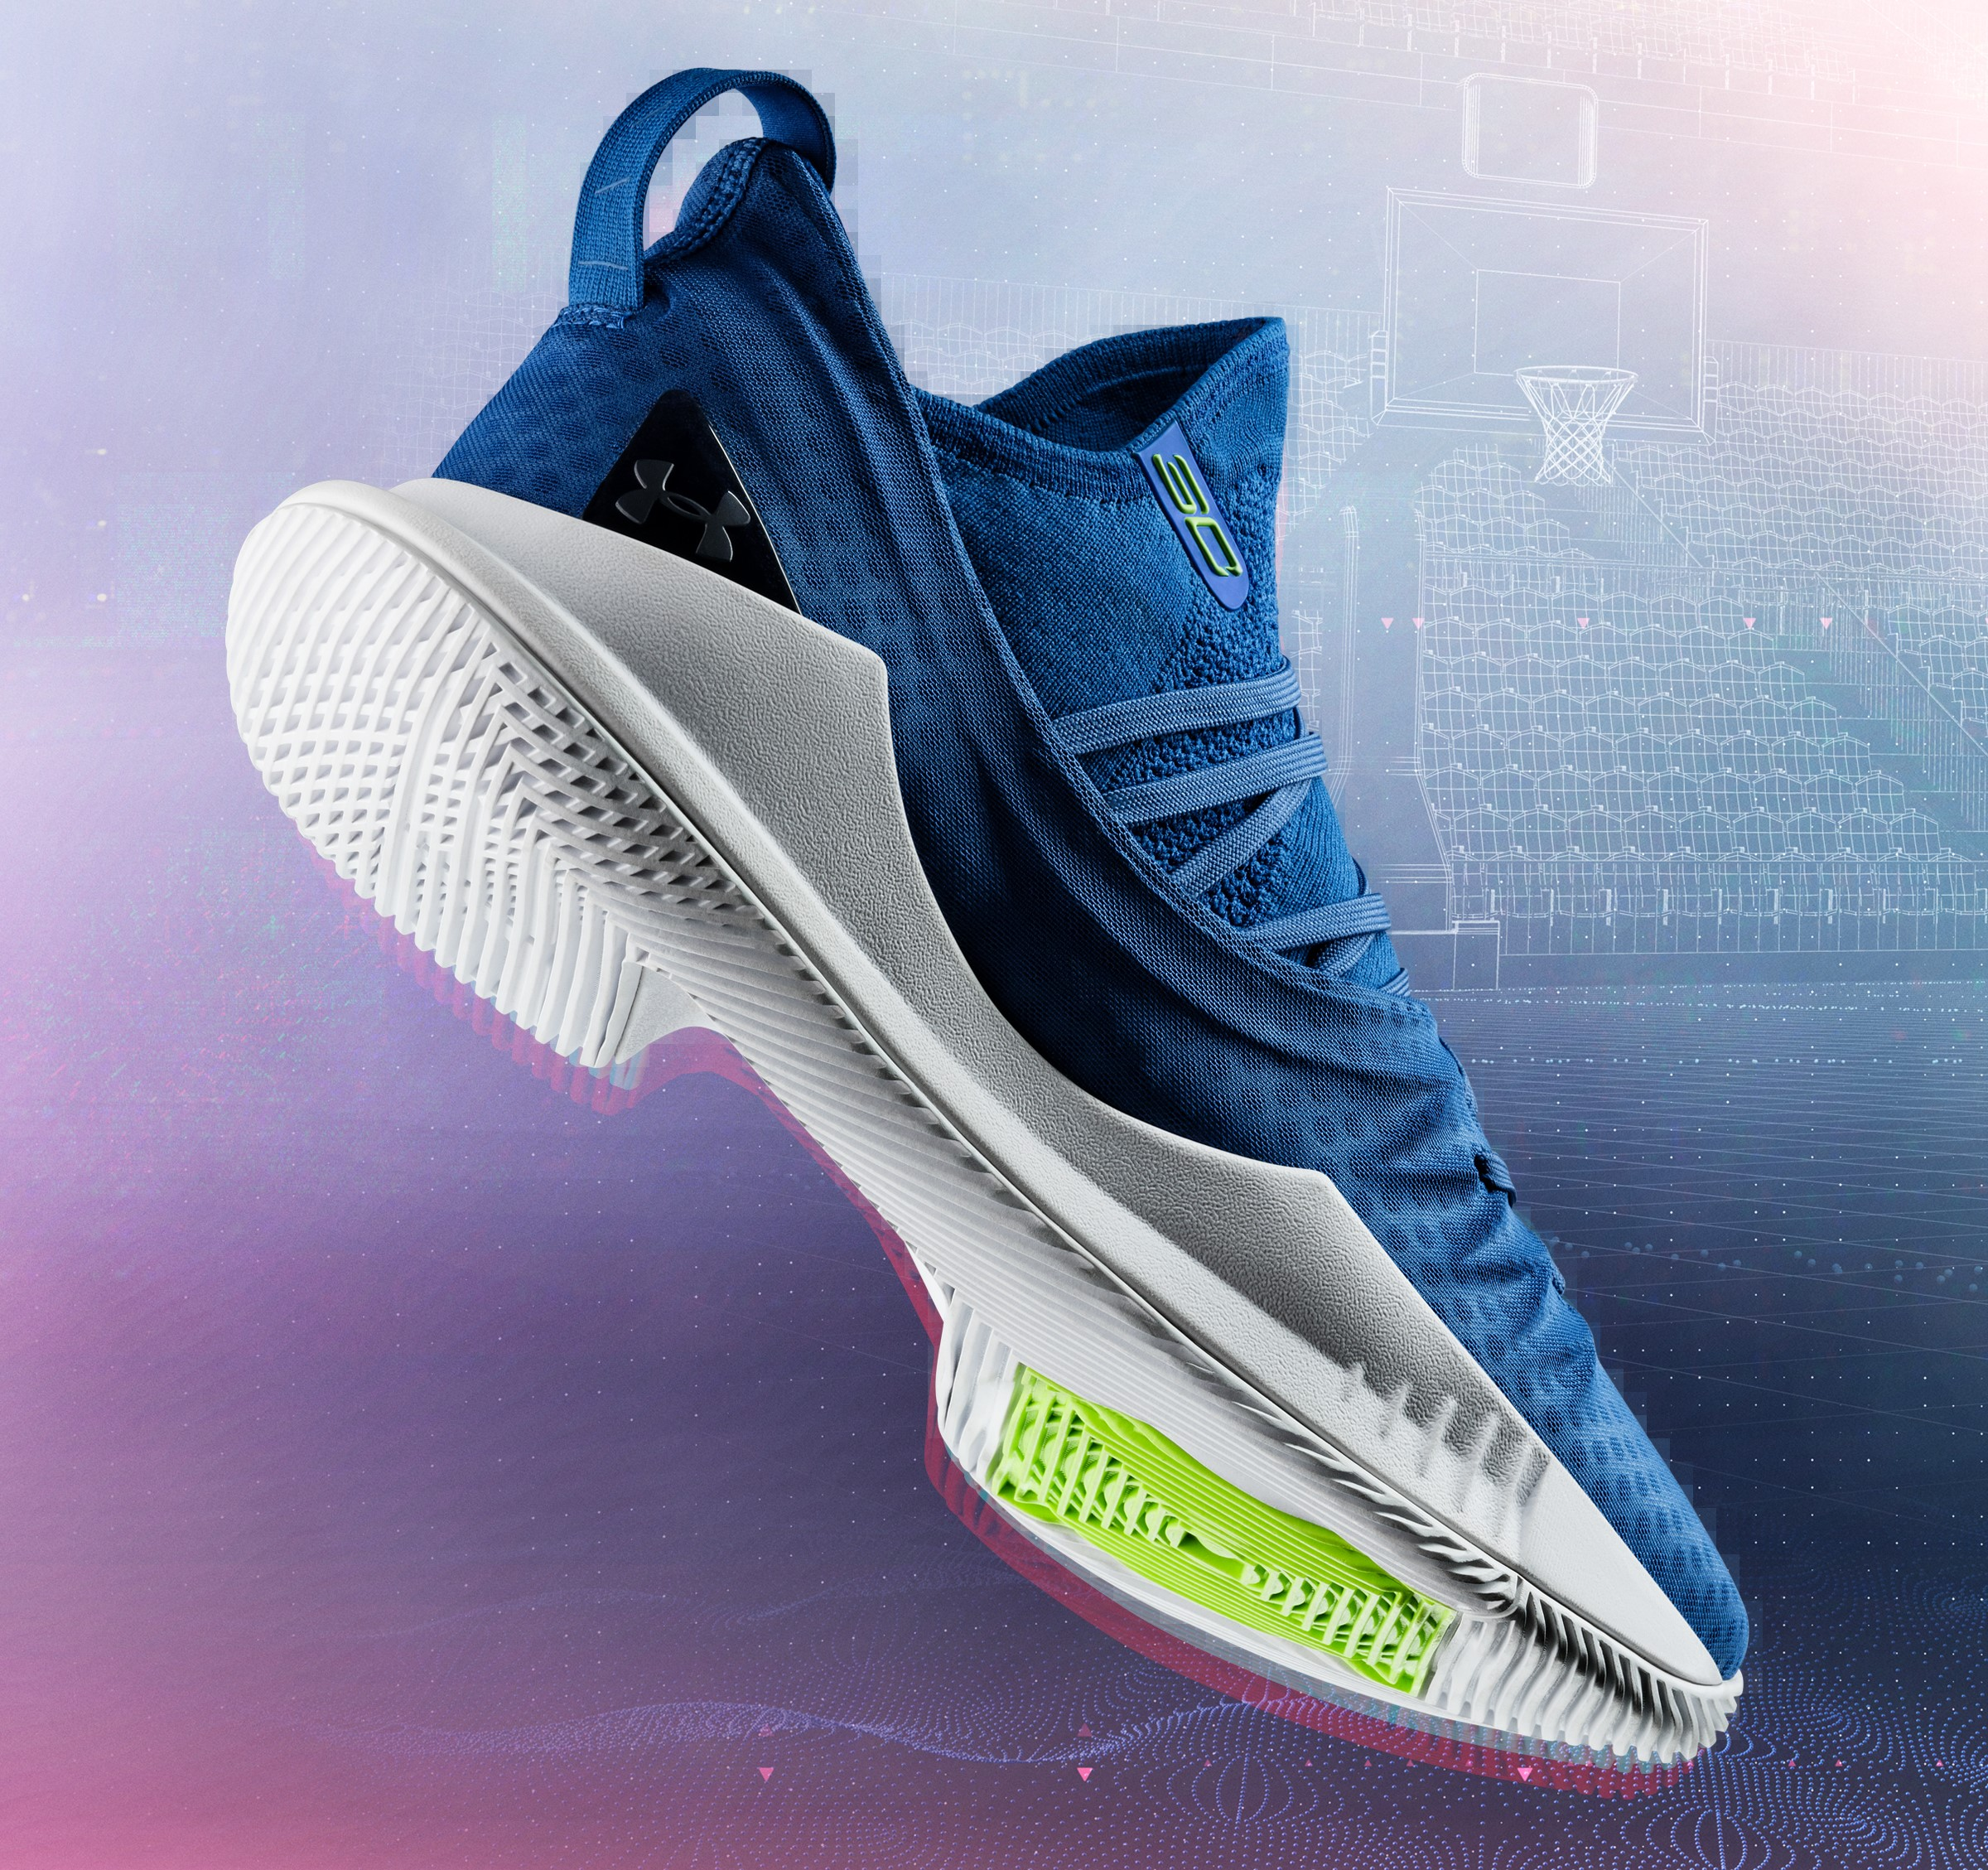 841d97d05c23 UA Curry 5 Moroccan blue release date - WearTesters